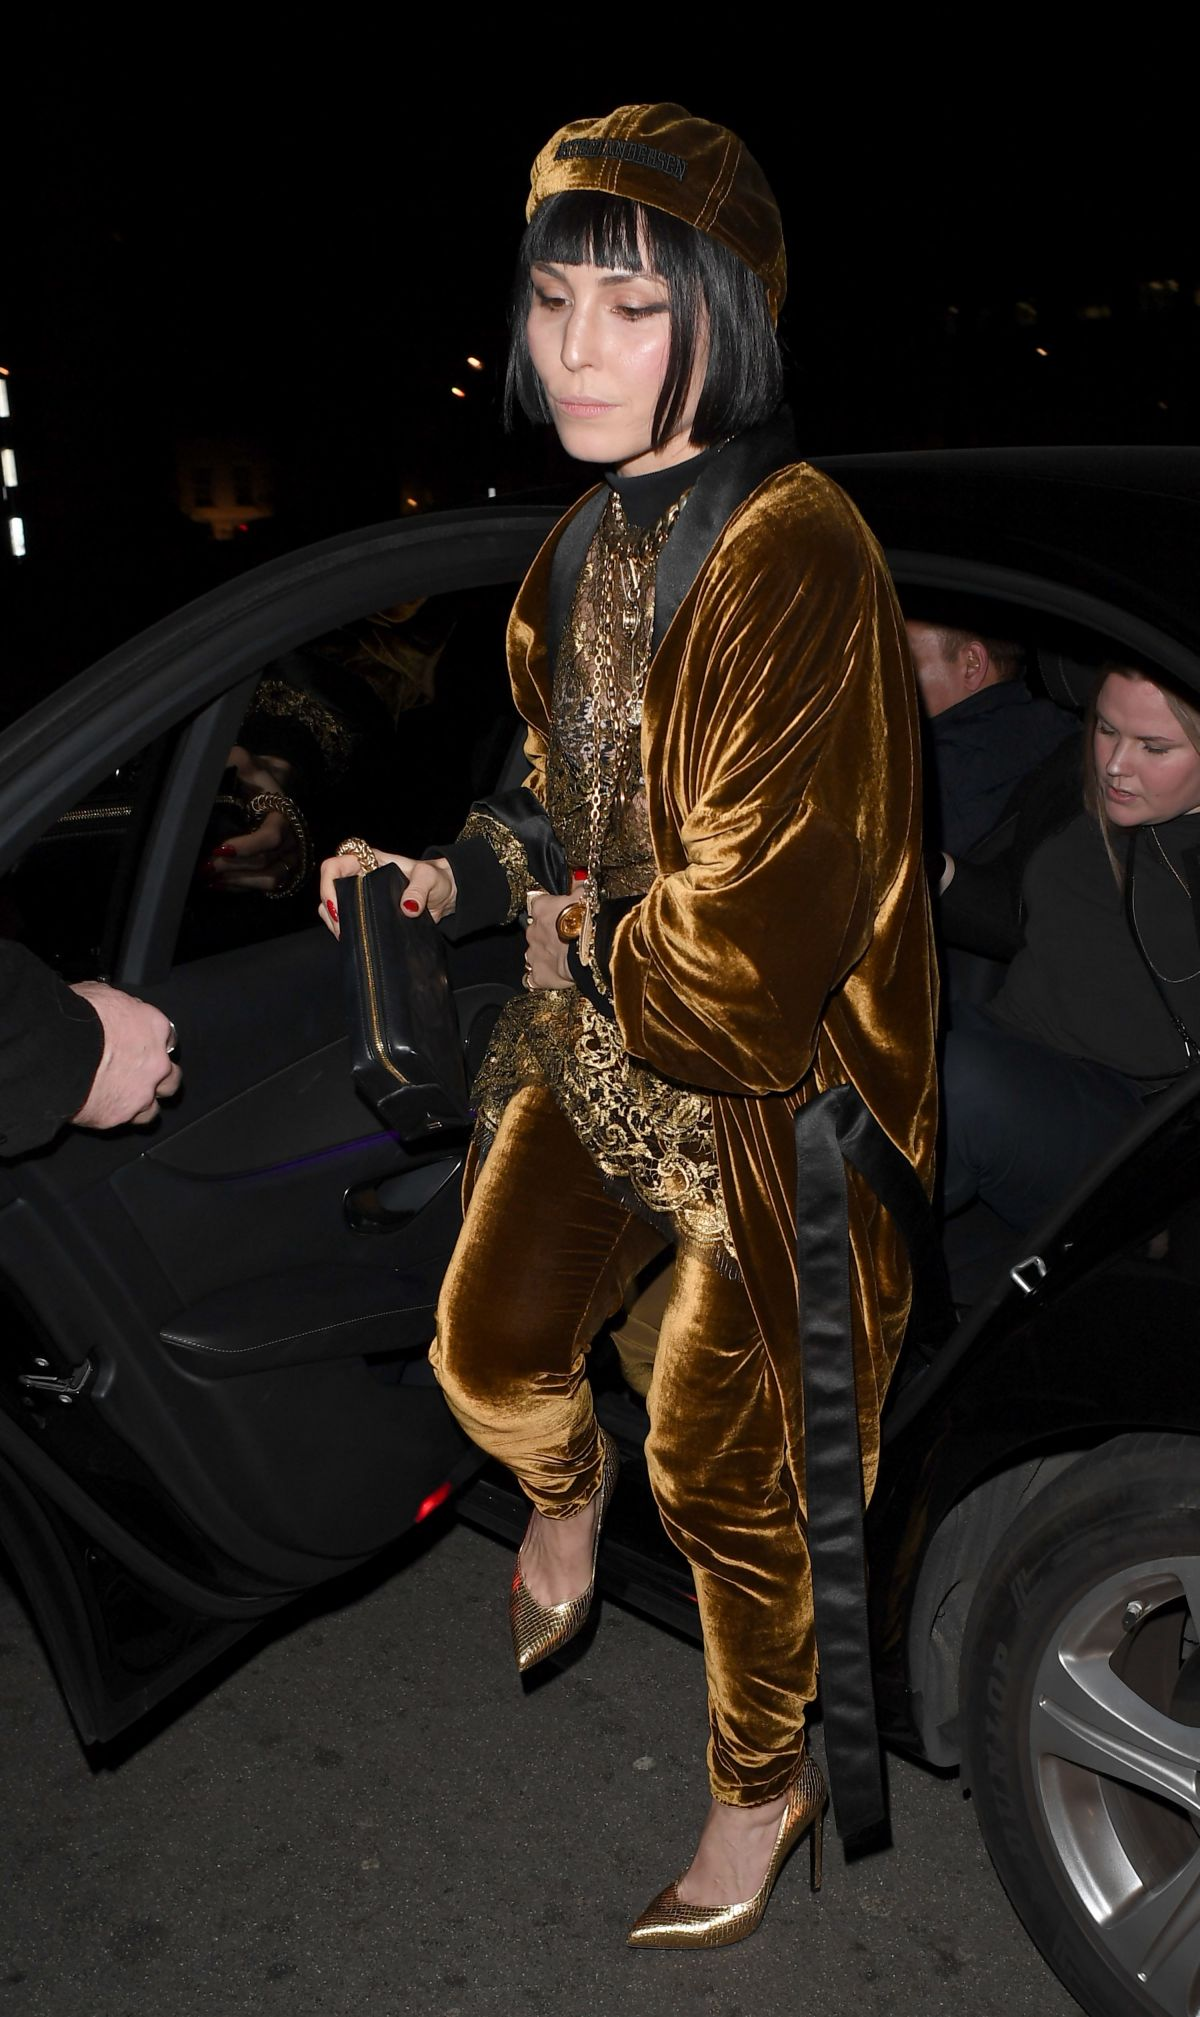 NOOMI RAPACE at Burberry Fashion Show After Party in London 02/20/2017